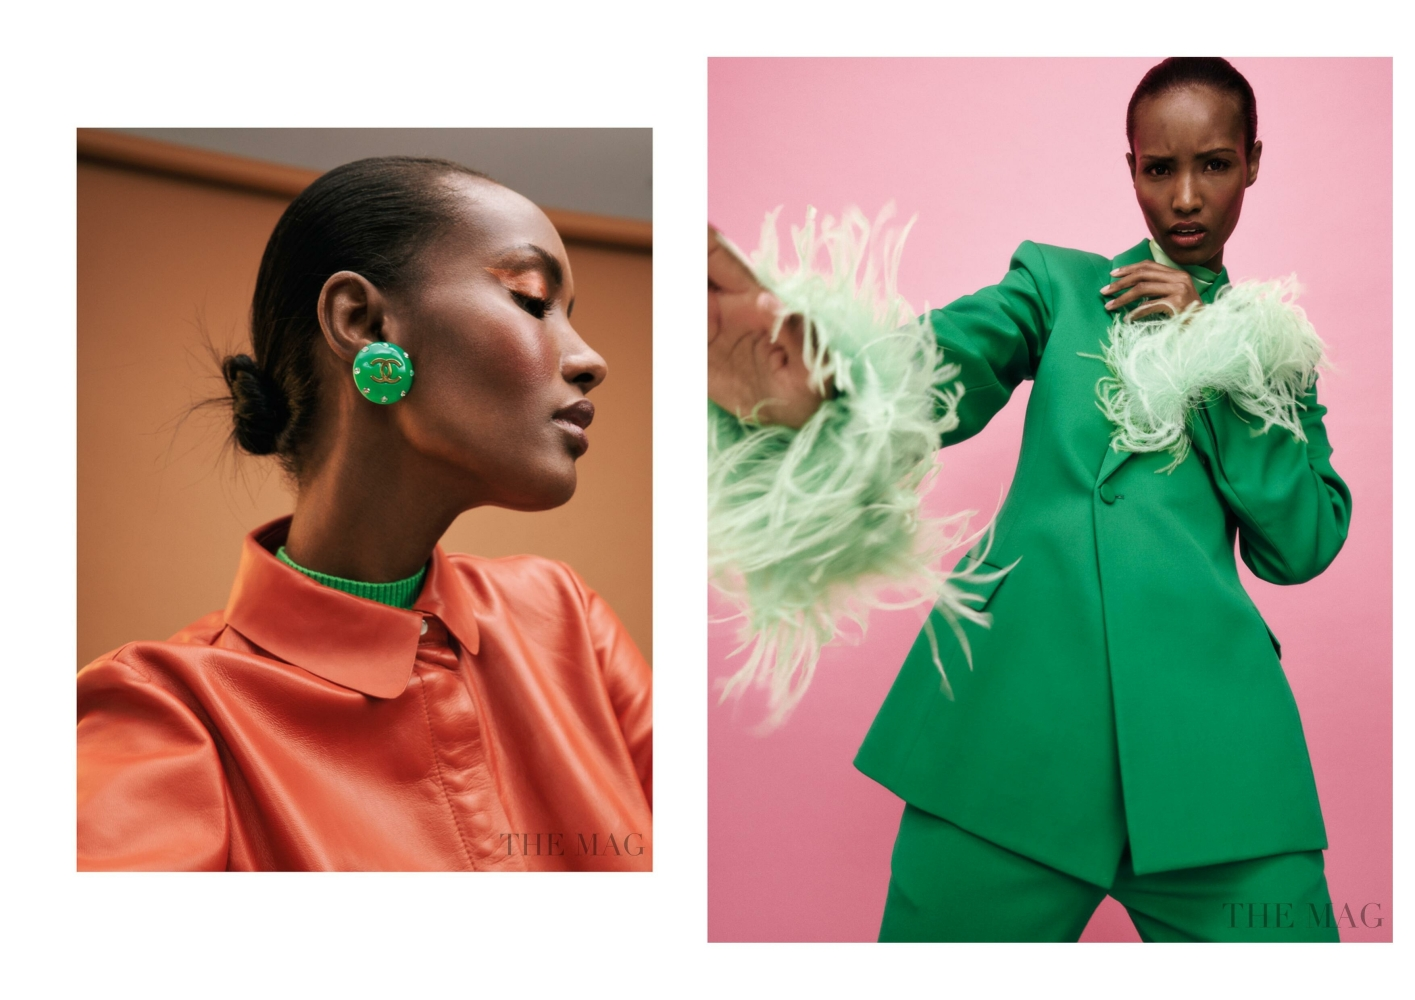 FATIMA S for The Mag summer 2021 #special